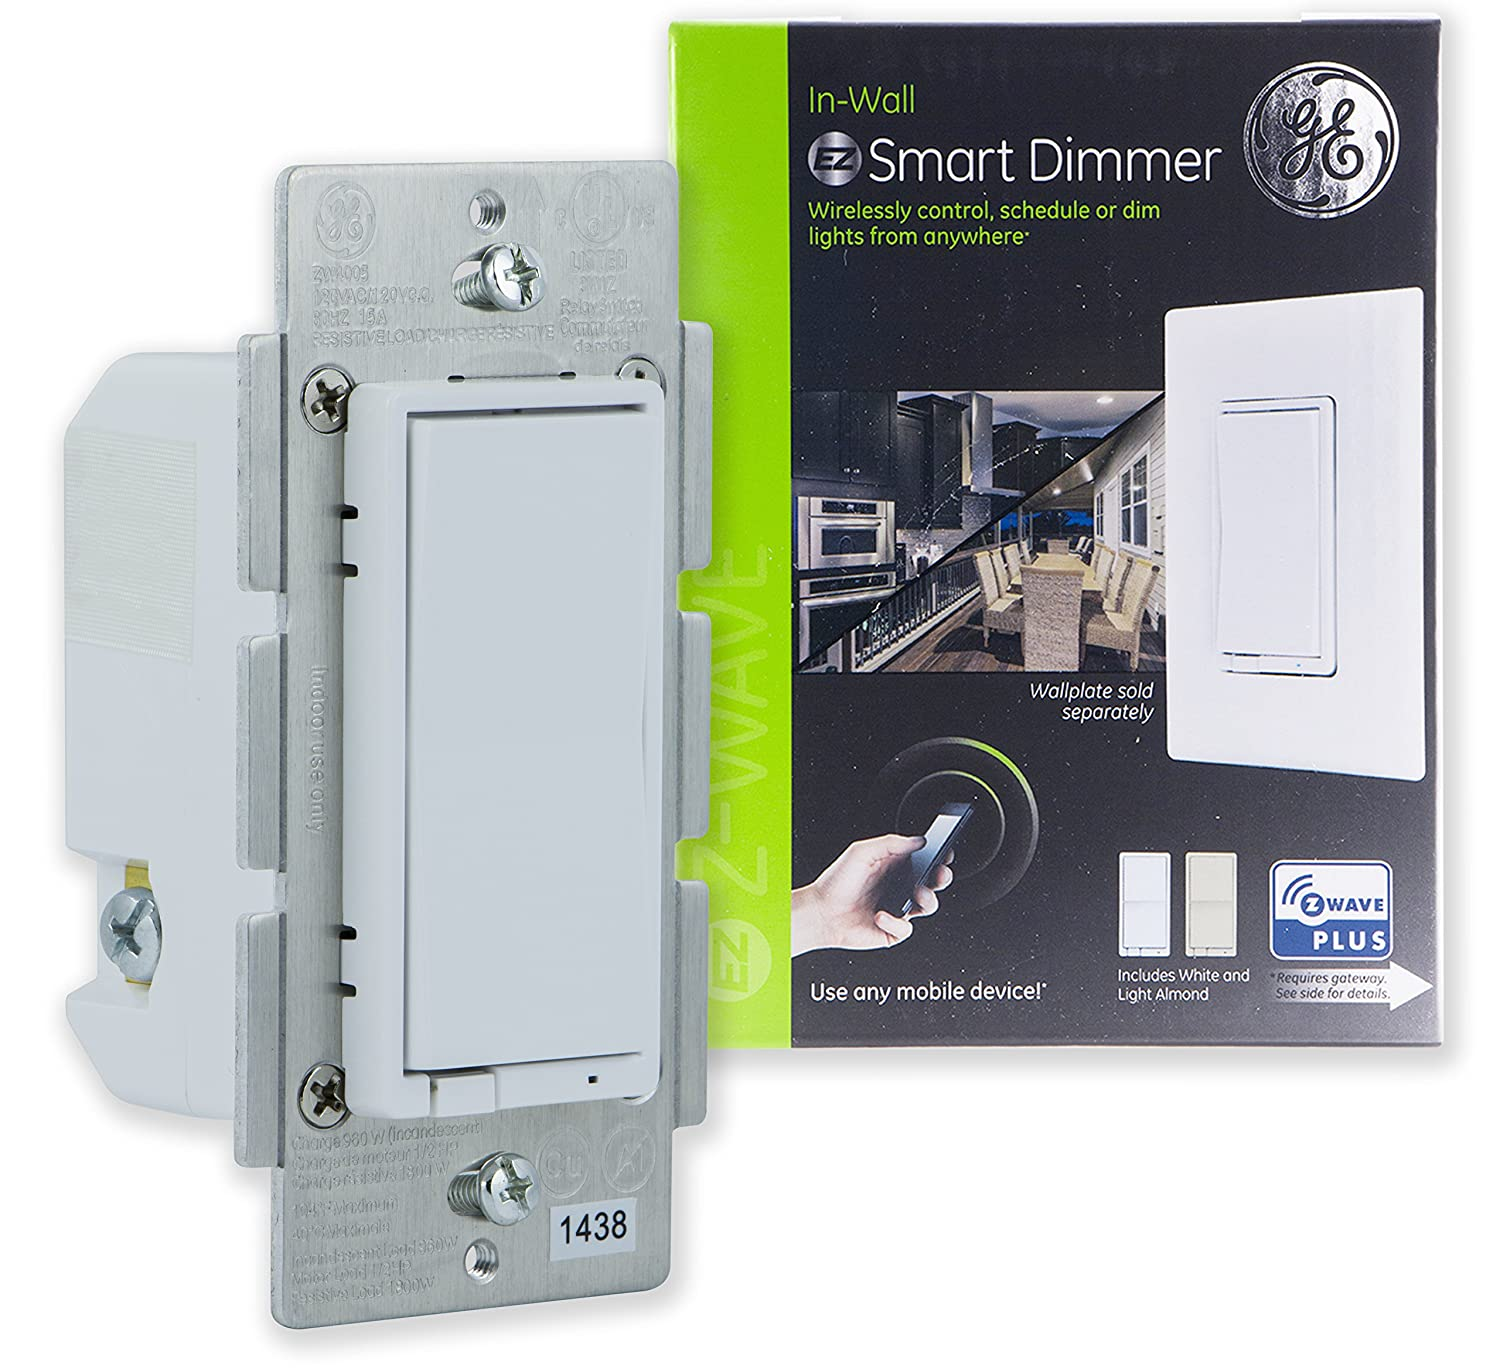 Ge Z Wave Plus Smart Control Dimmer Switch Wall White Light Wiring Almond Paddles Repeater Range Extender Zwave Hub Required Works With Smartthings Wink